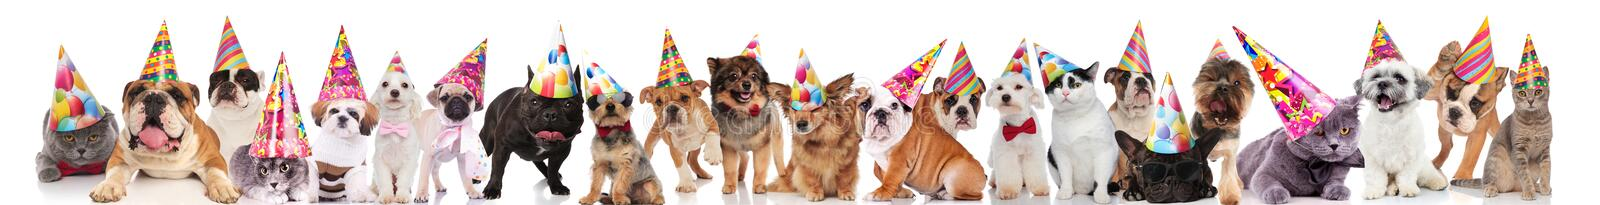 Team of many cats and dogs wearing birthday hats. While standing, sitting and lying on white background royalty free stock photos